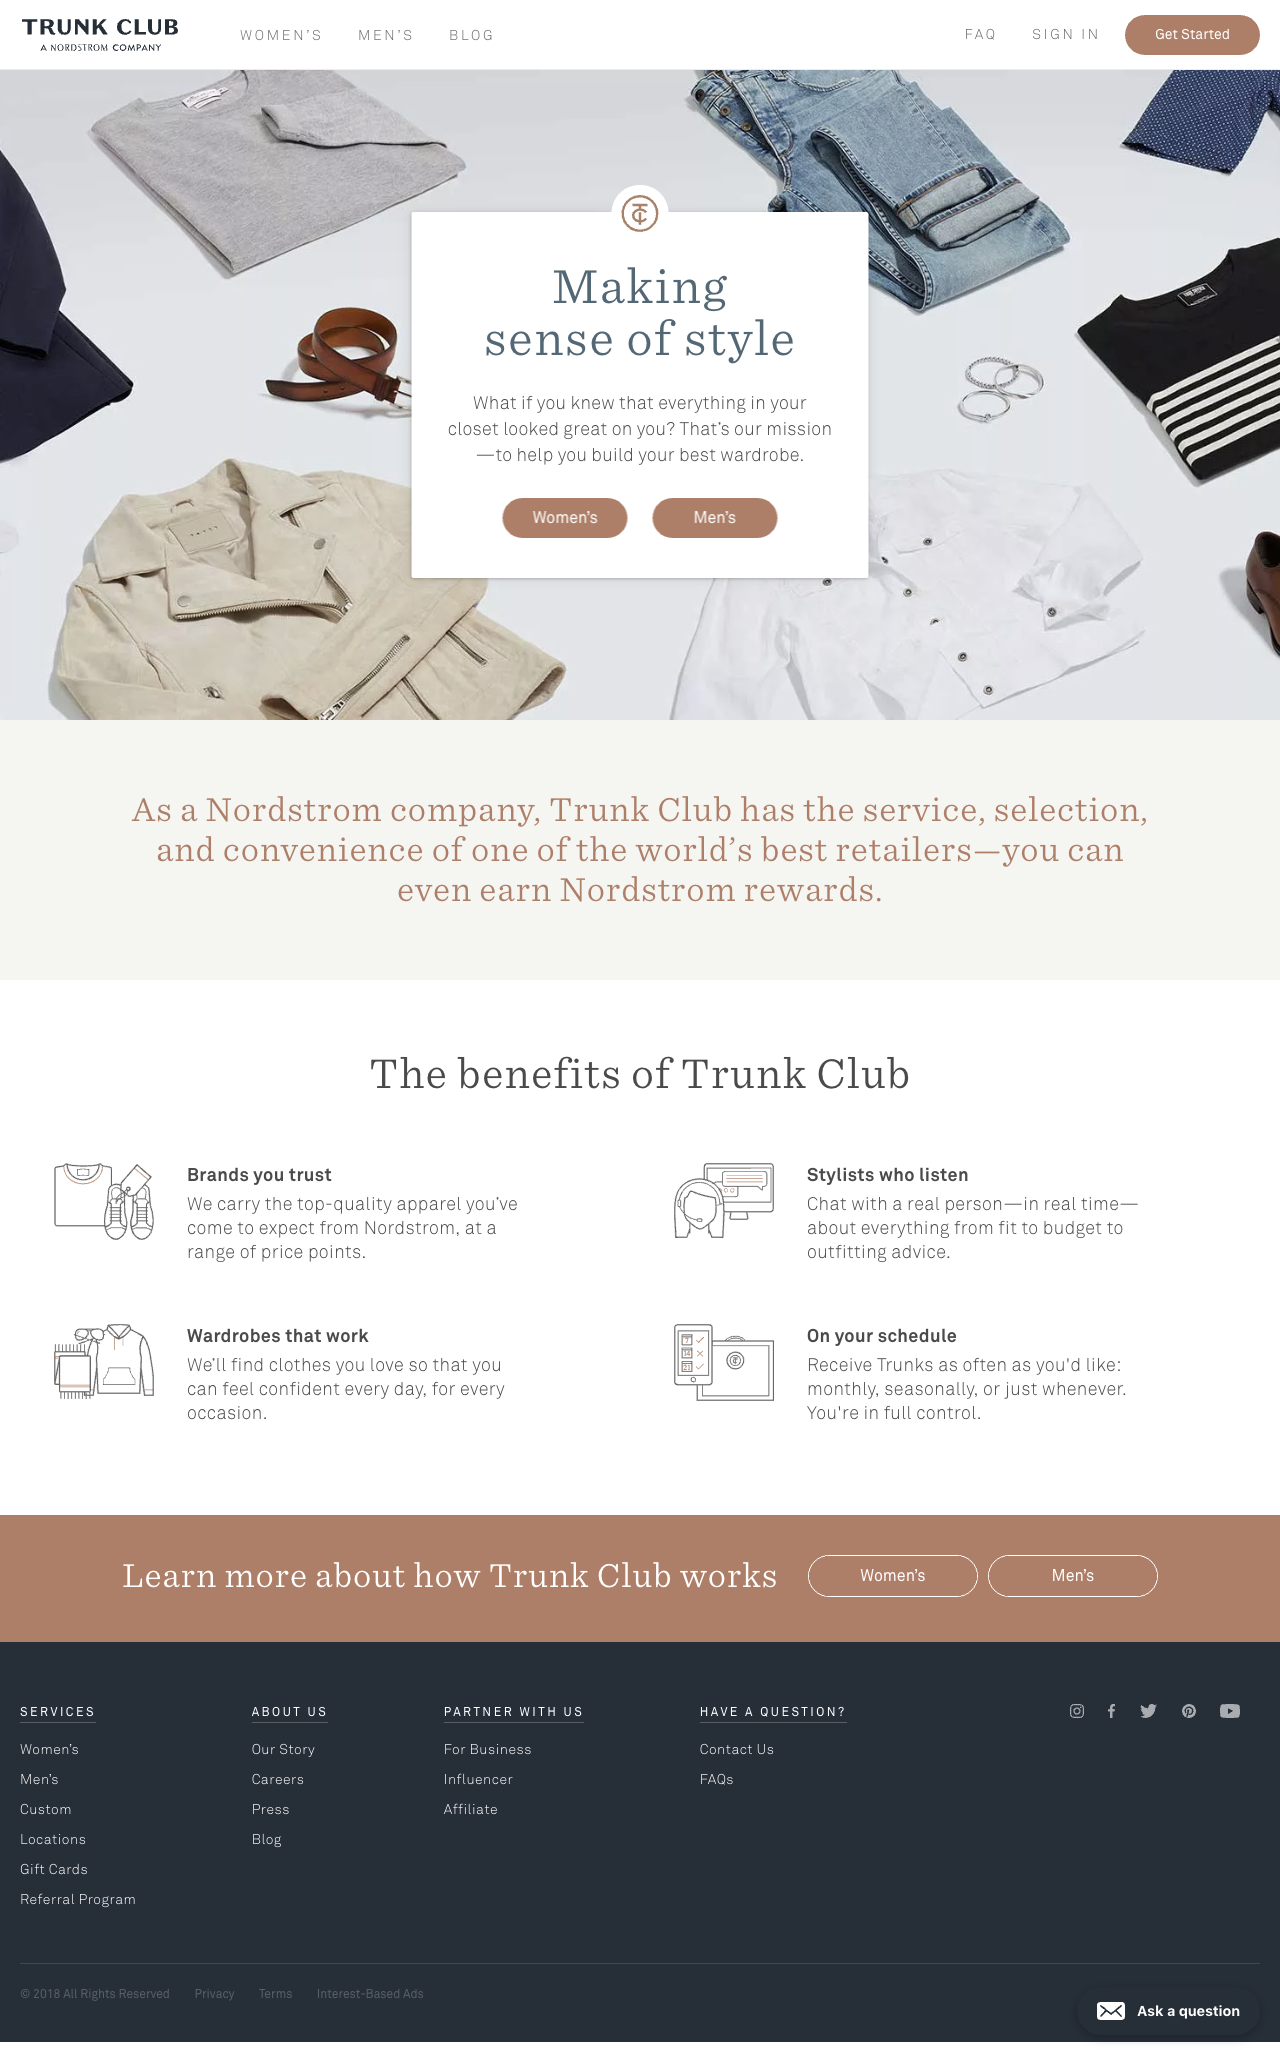 Trunk Club runs on Statamic